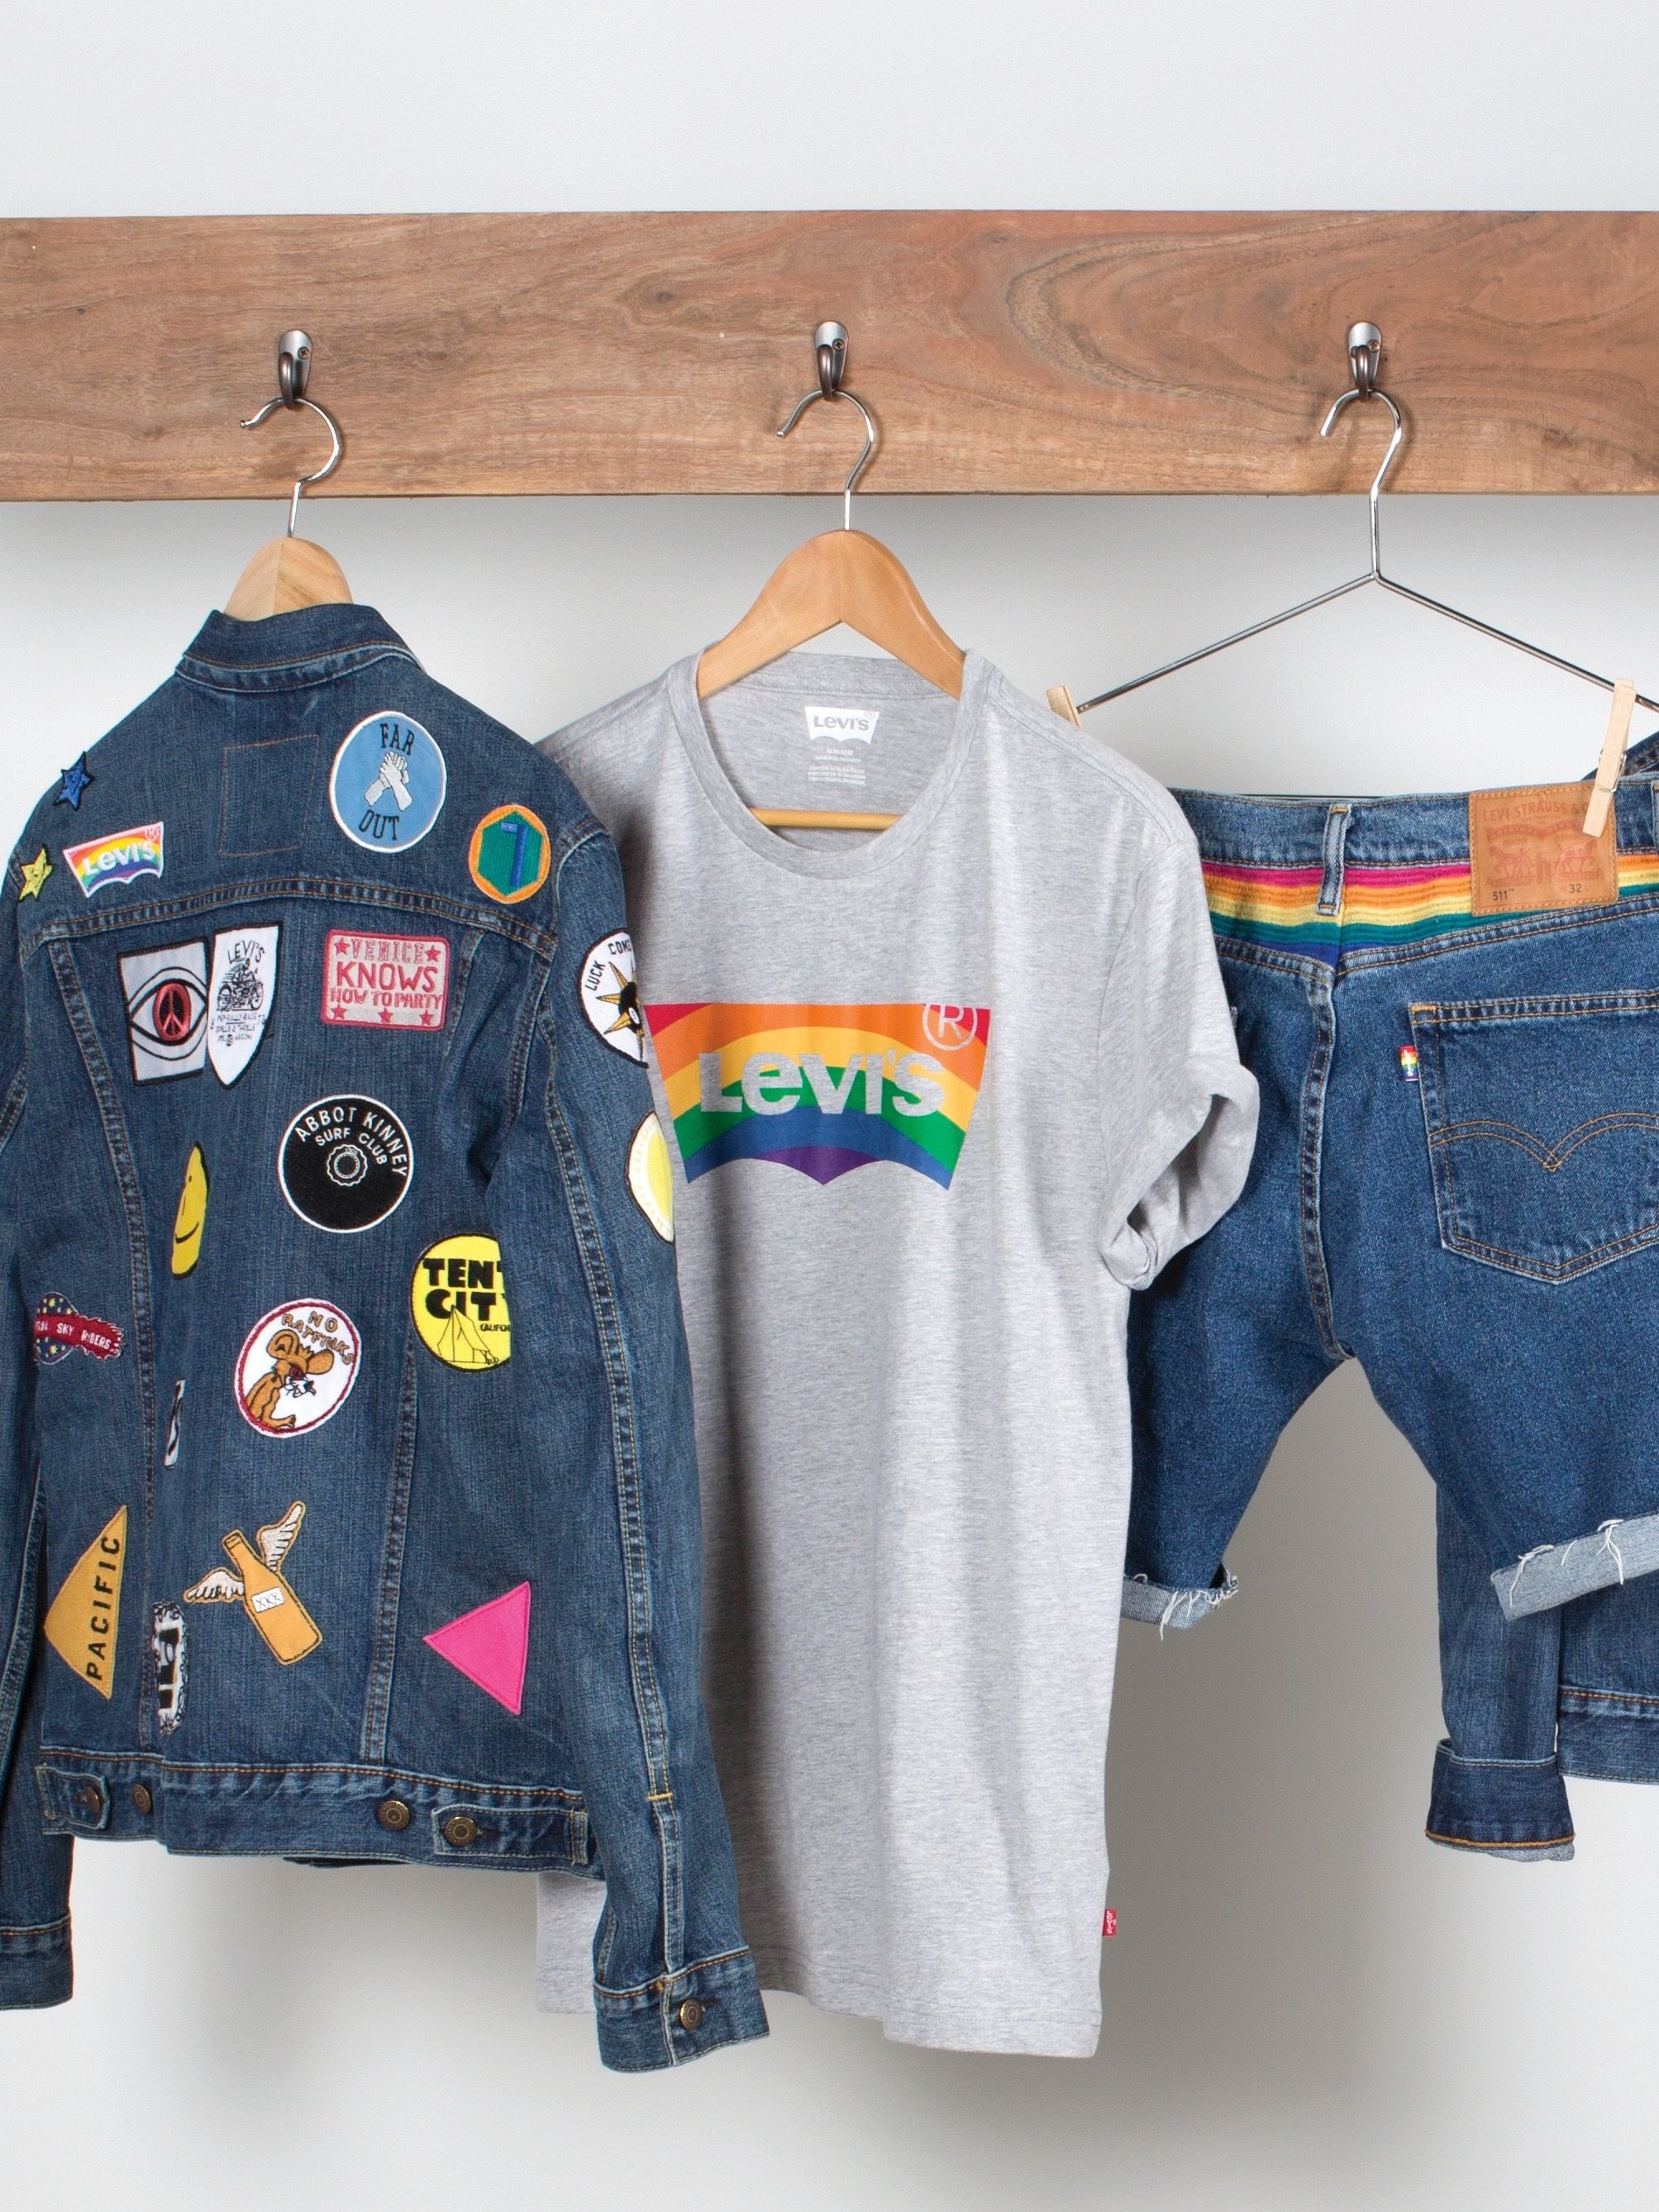 2fcf62ffcf89 The 2015 Levi s Pride Collection celebrates key moments in Gay Rights  history and was designed for all with singular silhouettes selected despite  gender.